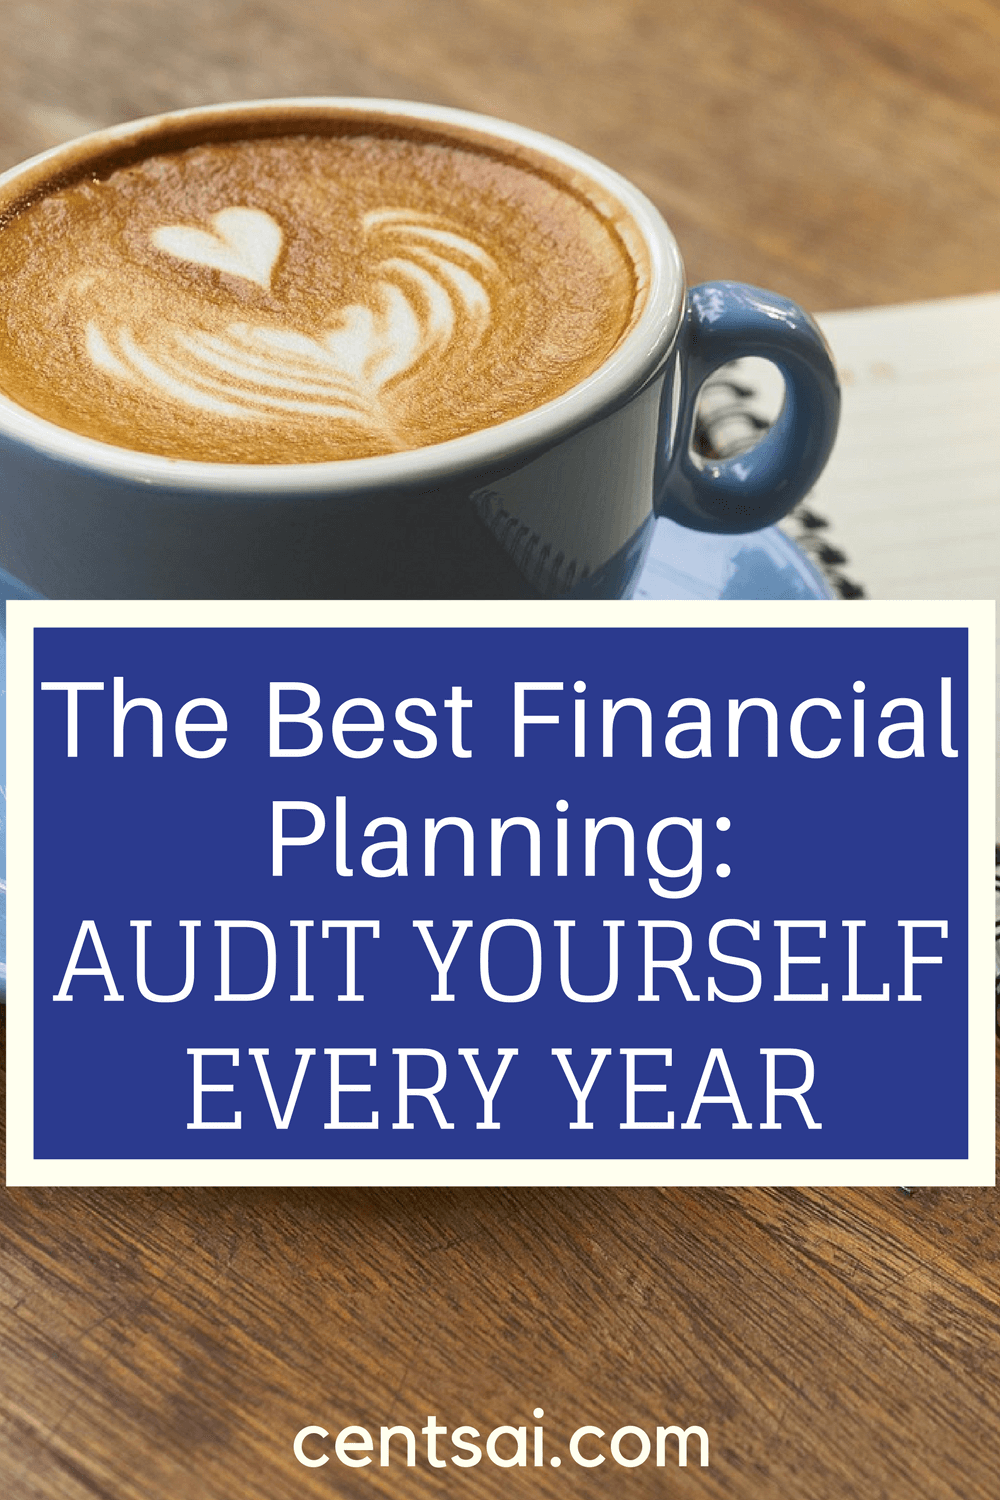 The Best Financial Planning Audit Yourself Every Year